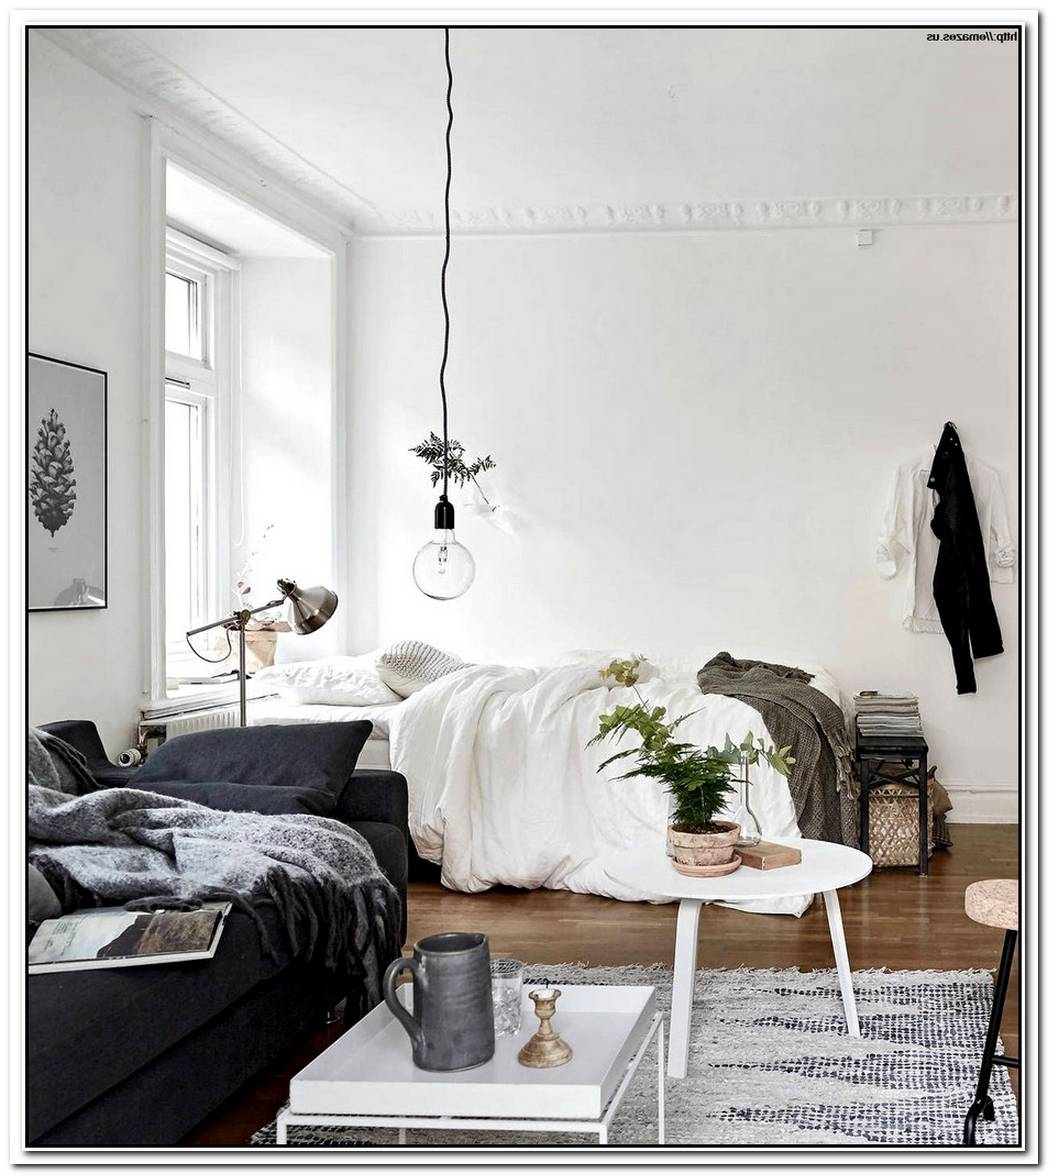 10 Small One Room Apartments Featuring A Scandinavian D%C3%A9cor